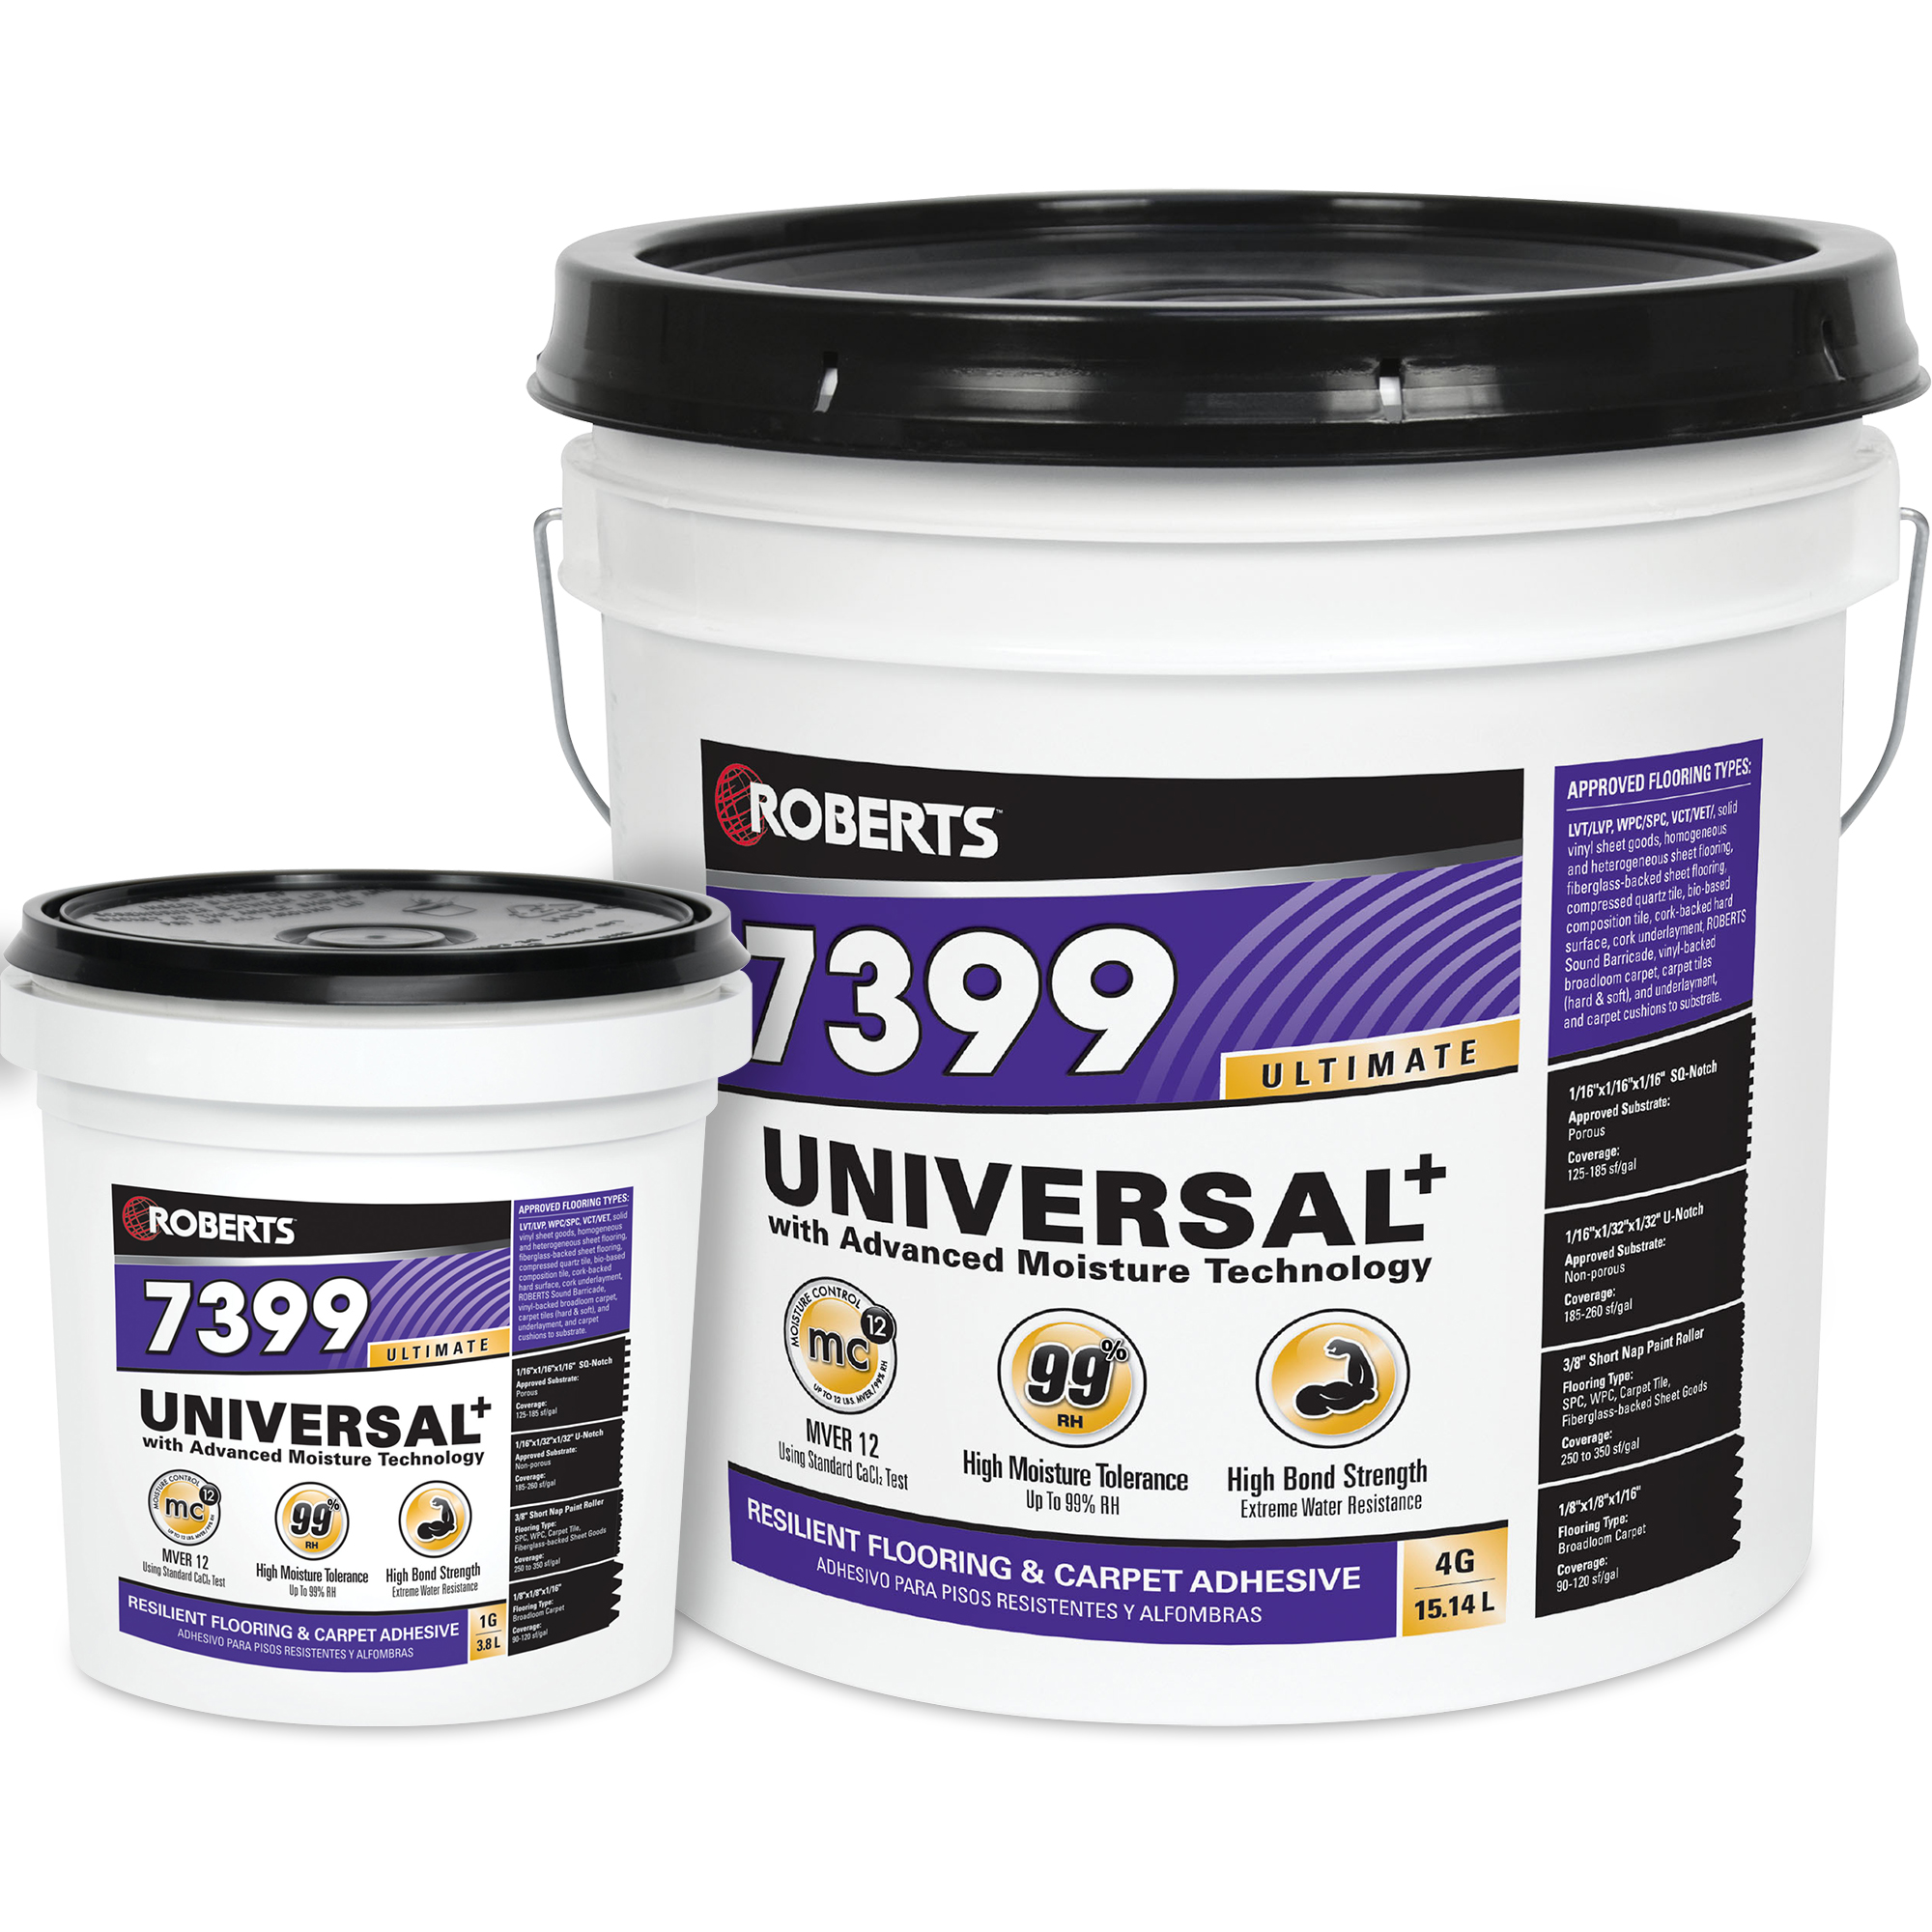 Universal Plus Resilient Flooring and Carpet Adhesive